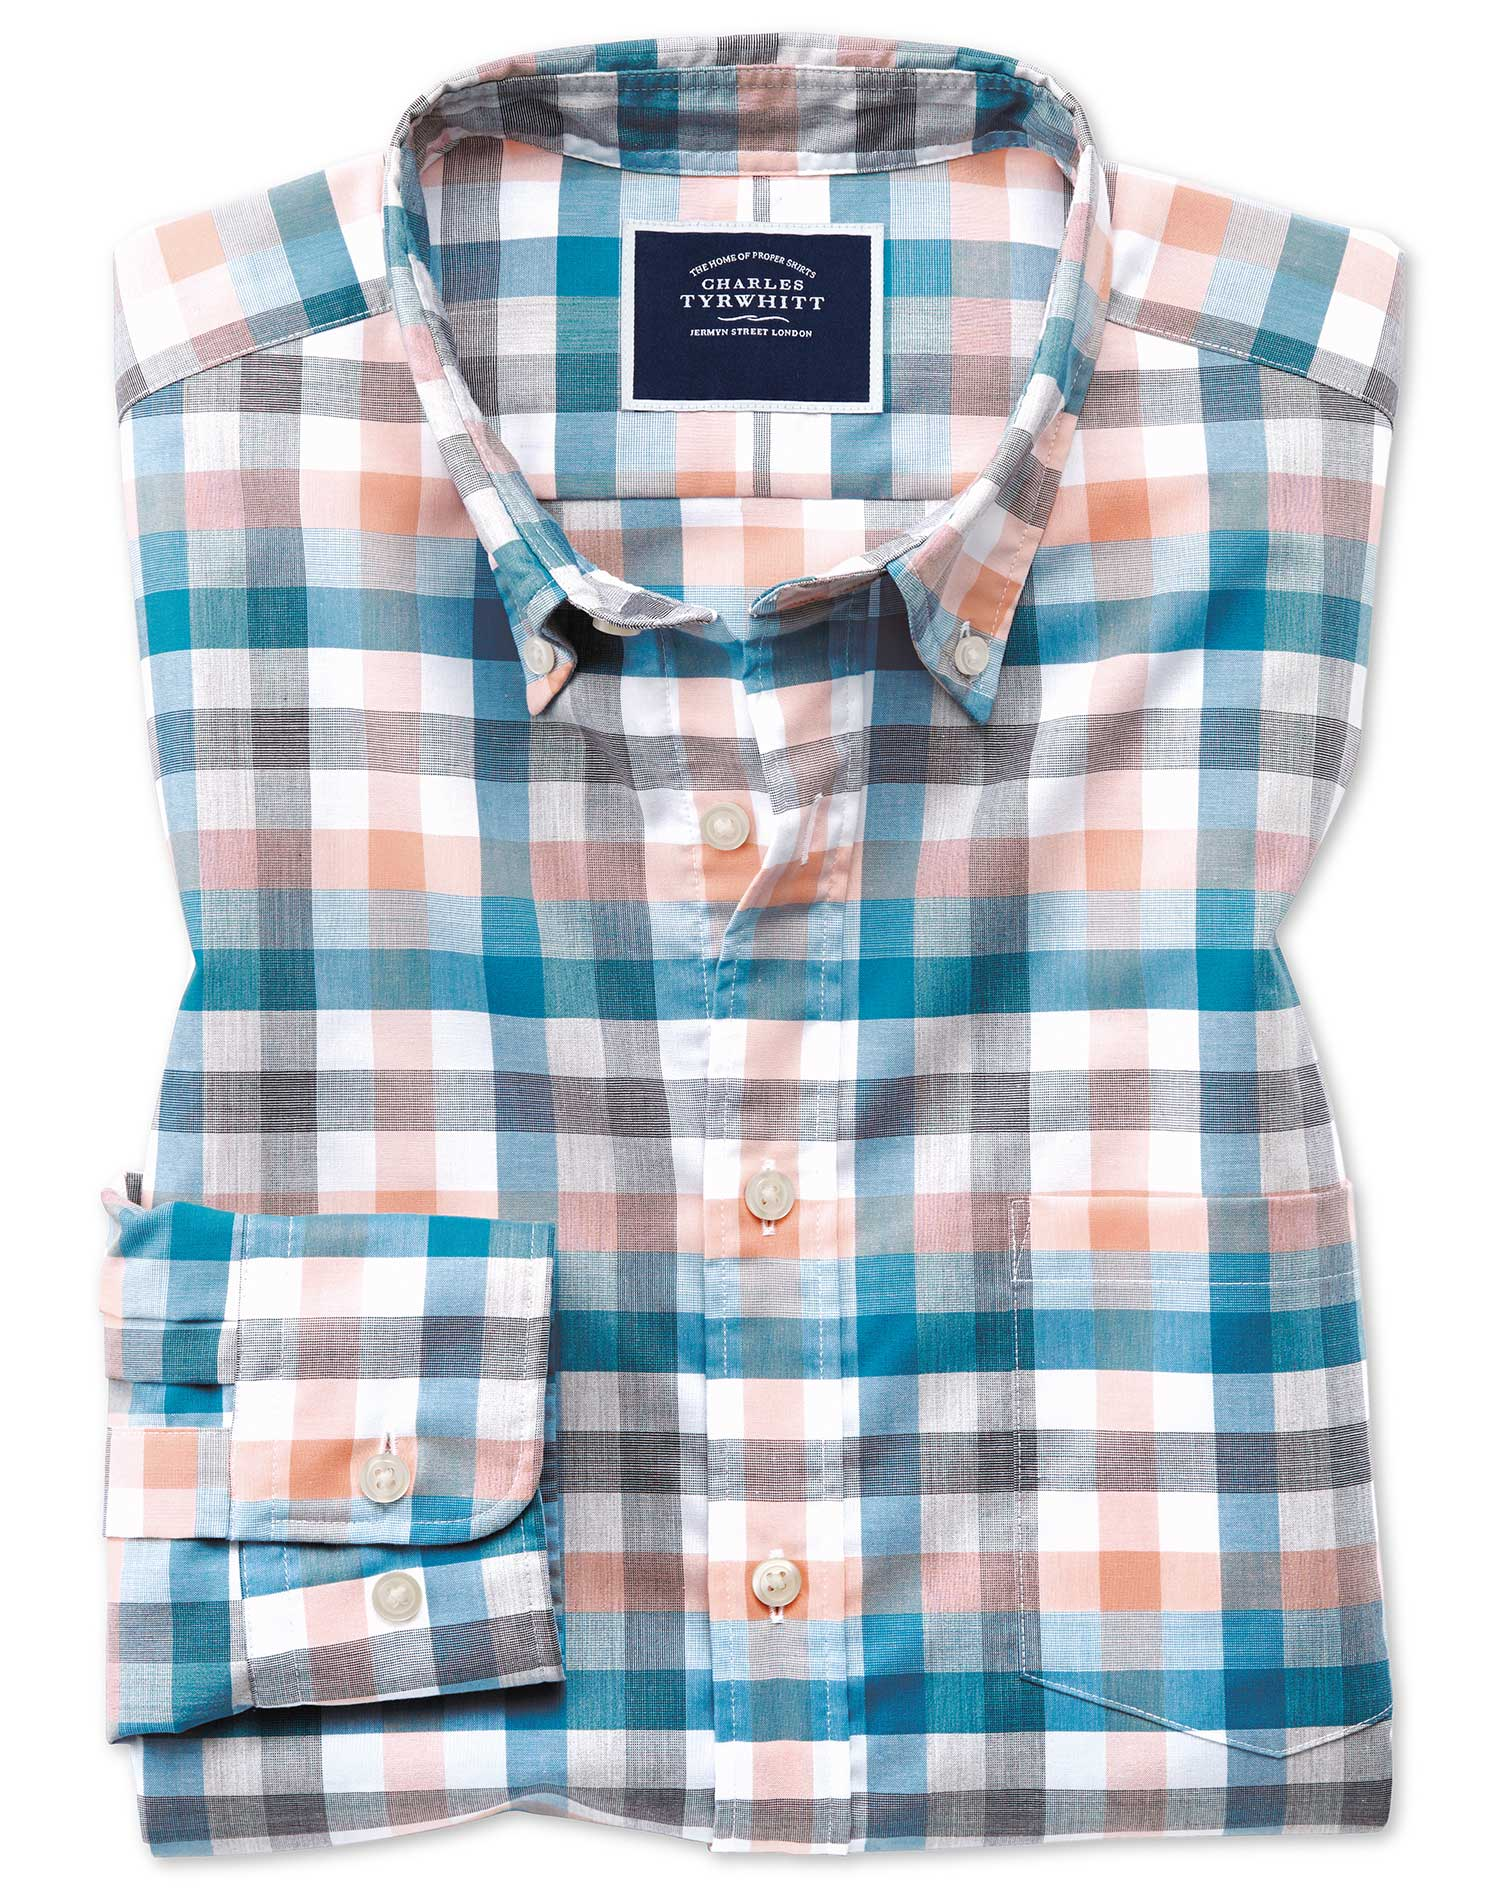 Classic Fit Coral Multi Check Soft Washed Non-Iron Tyrwhitt Cool Cotton Shirt Single Cuff Size XL by